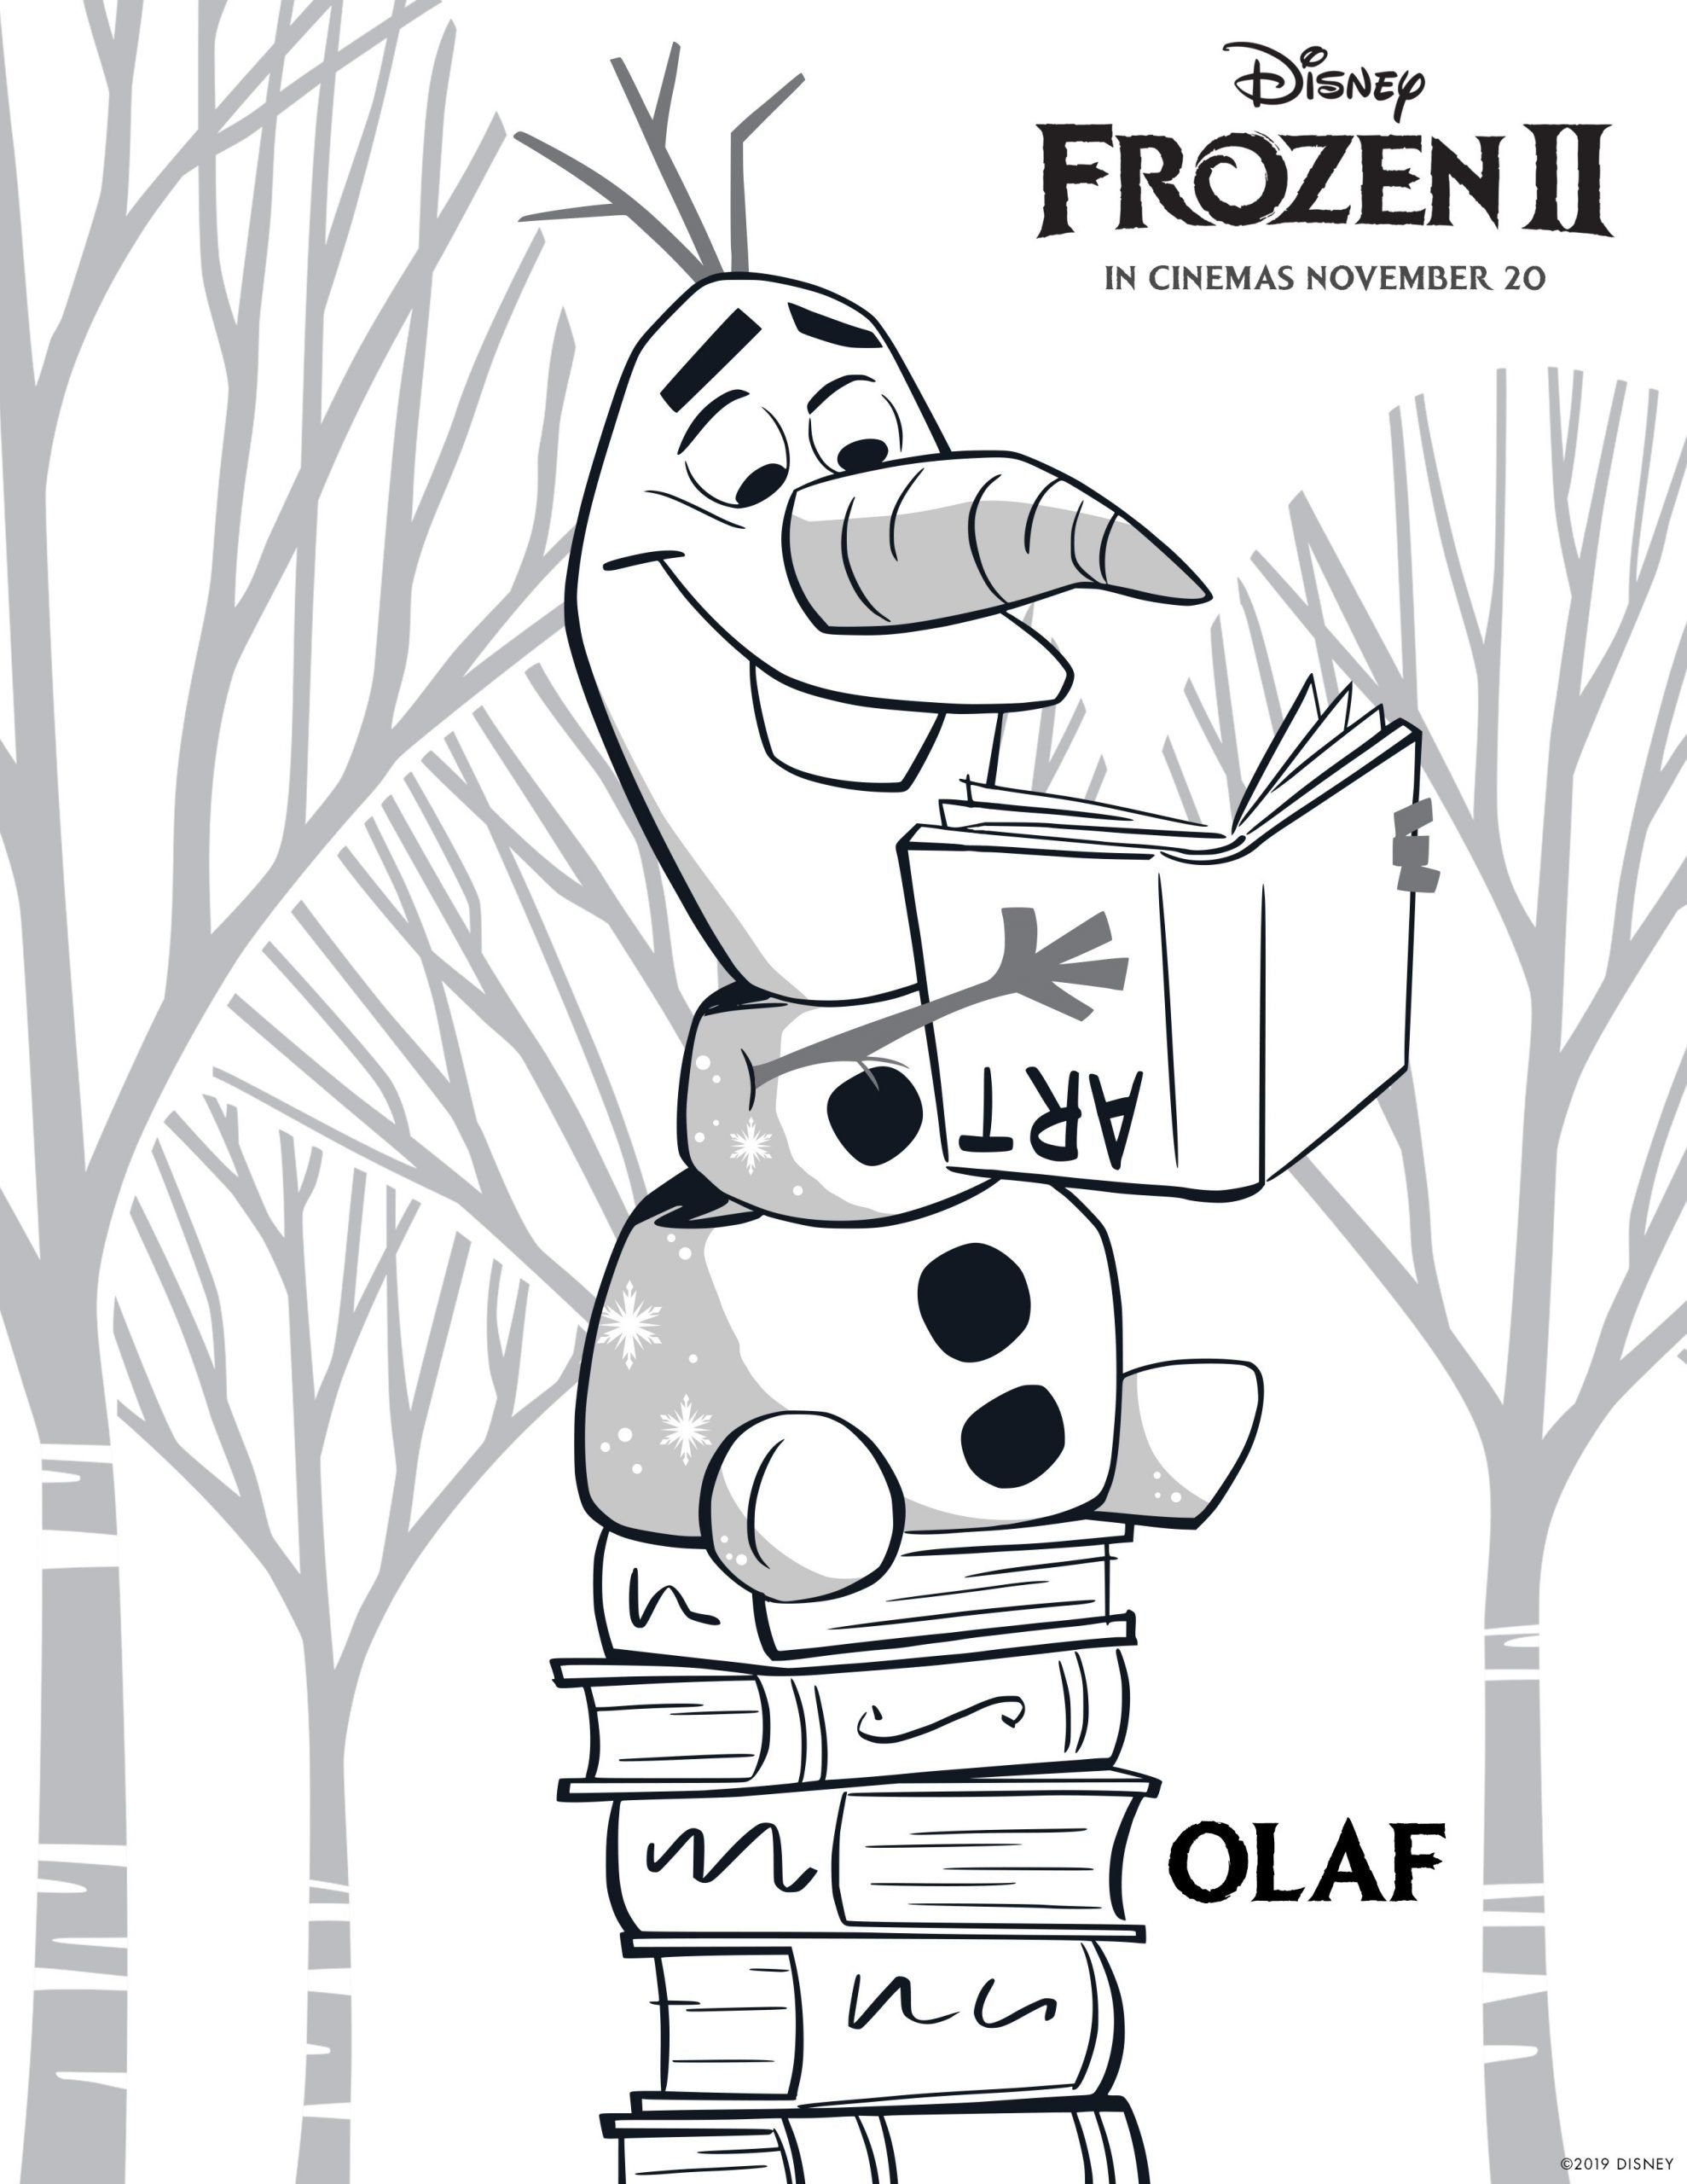 Free Coloring Pages Frozen Frozen 2 Free Coloring Pages With Elsa Anna Olaf Kristoff In 2020 Free Kids Coloring Pages Coloring Pages Coloring For Kids